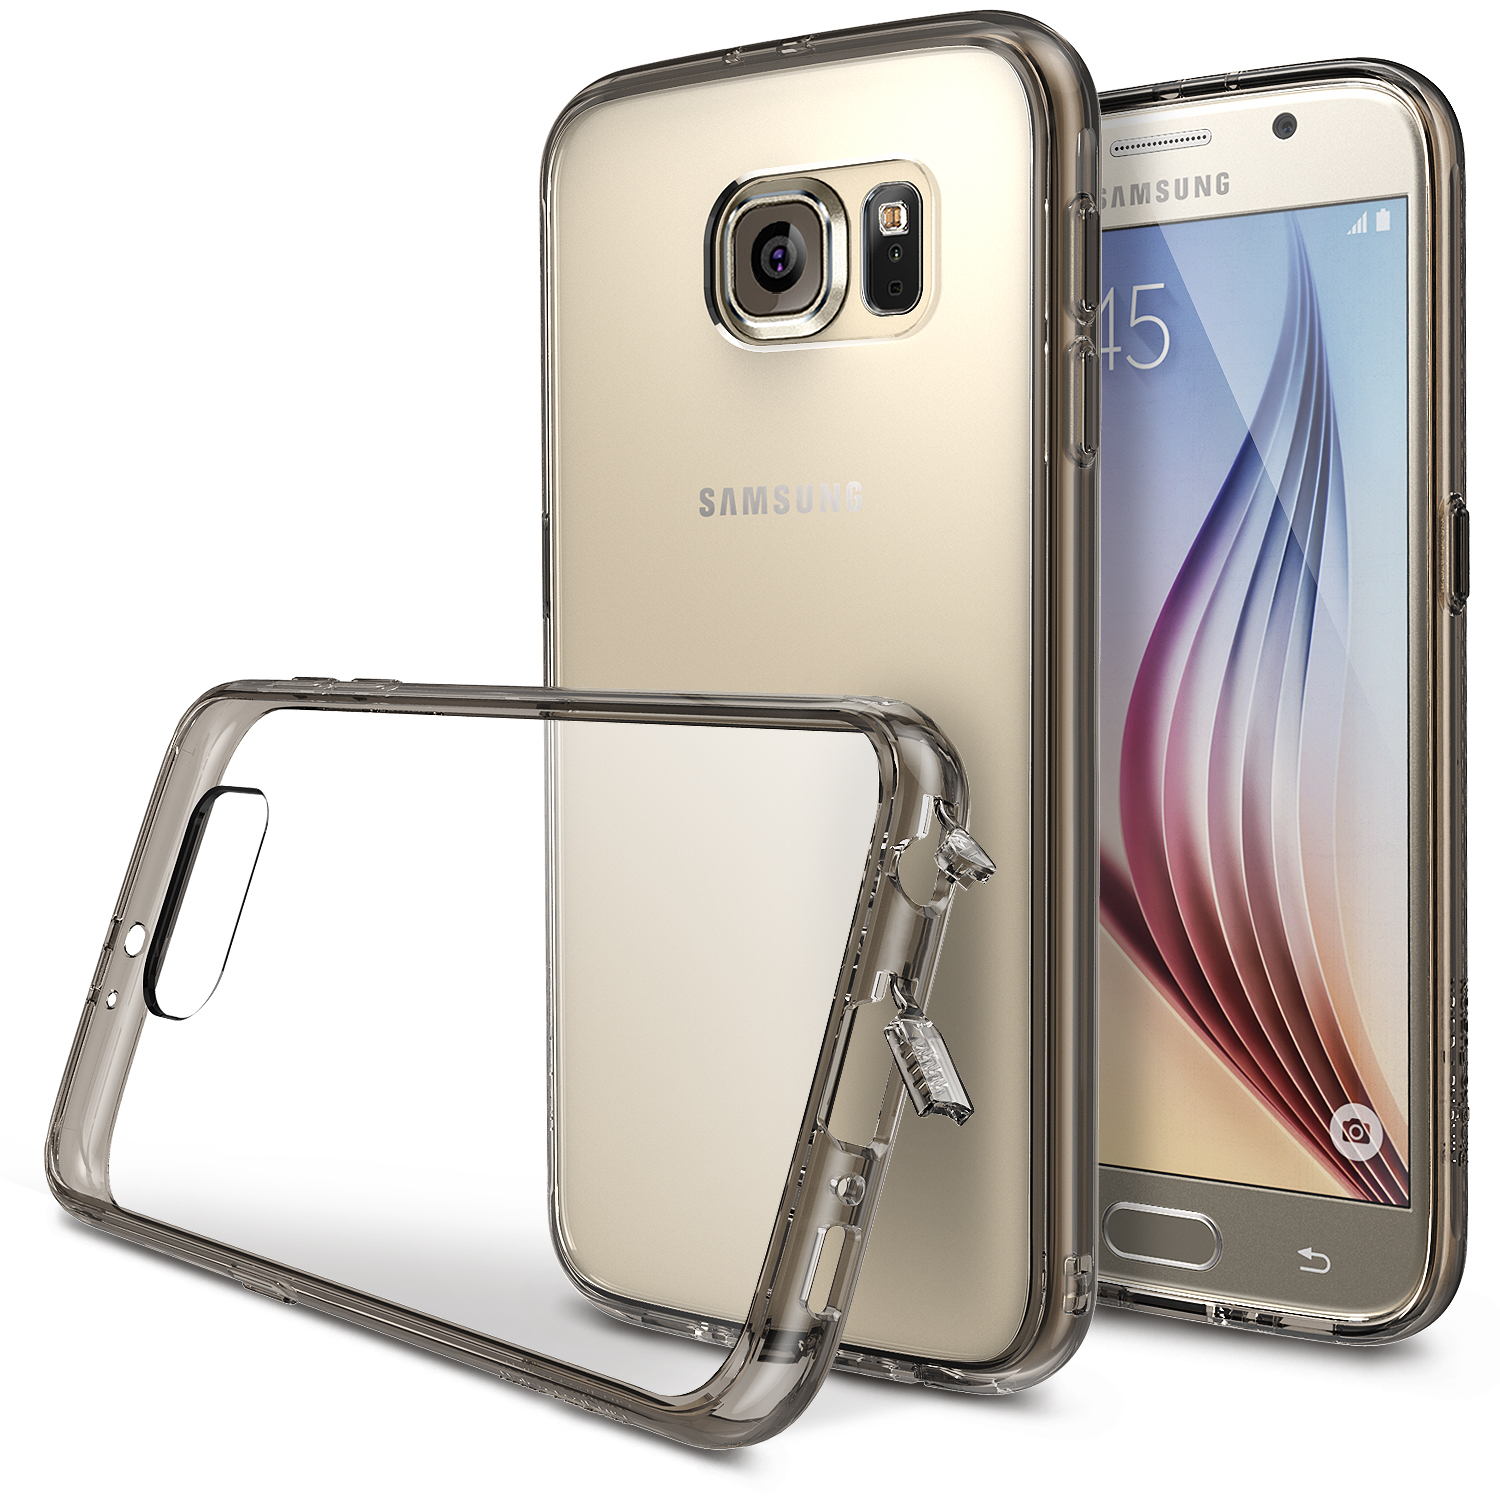 Samsung Galaxy S6 Case, Ringke [Smoke Black] FUSION Series Featuring Shock Absorption TPU Bumper with Hard Polycarbonate Back w/ Free Screen Protector